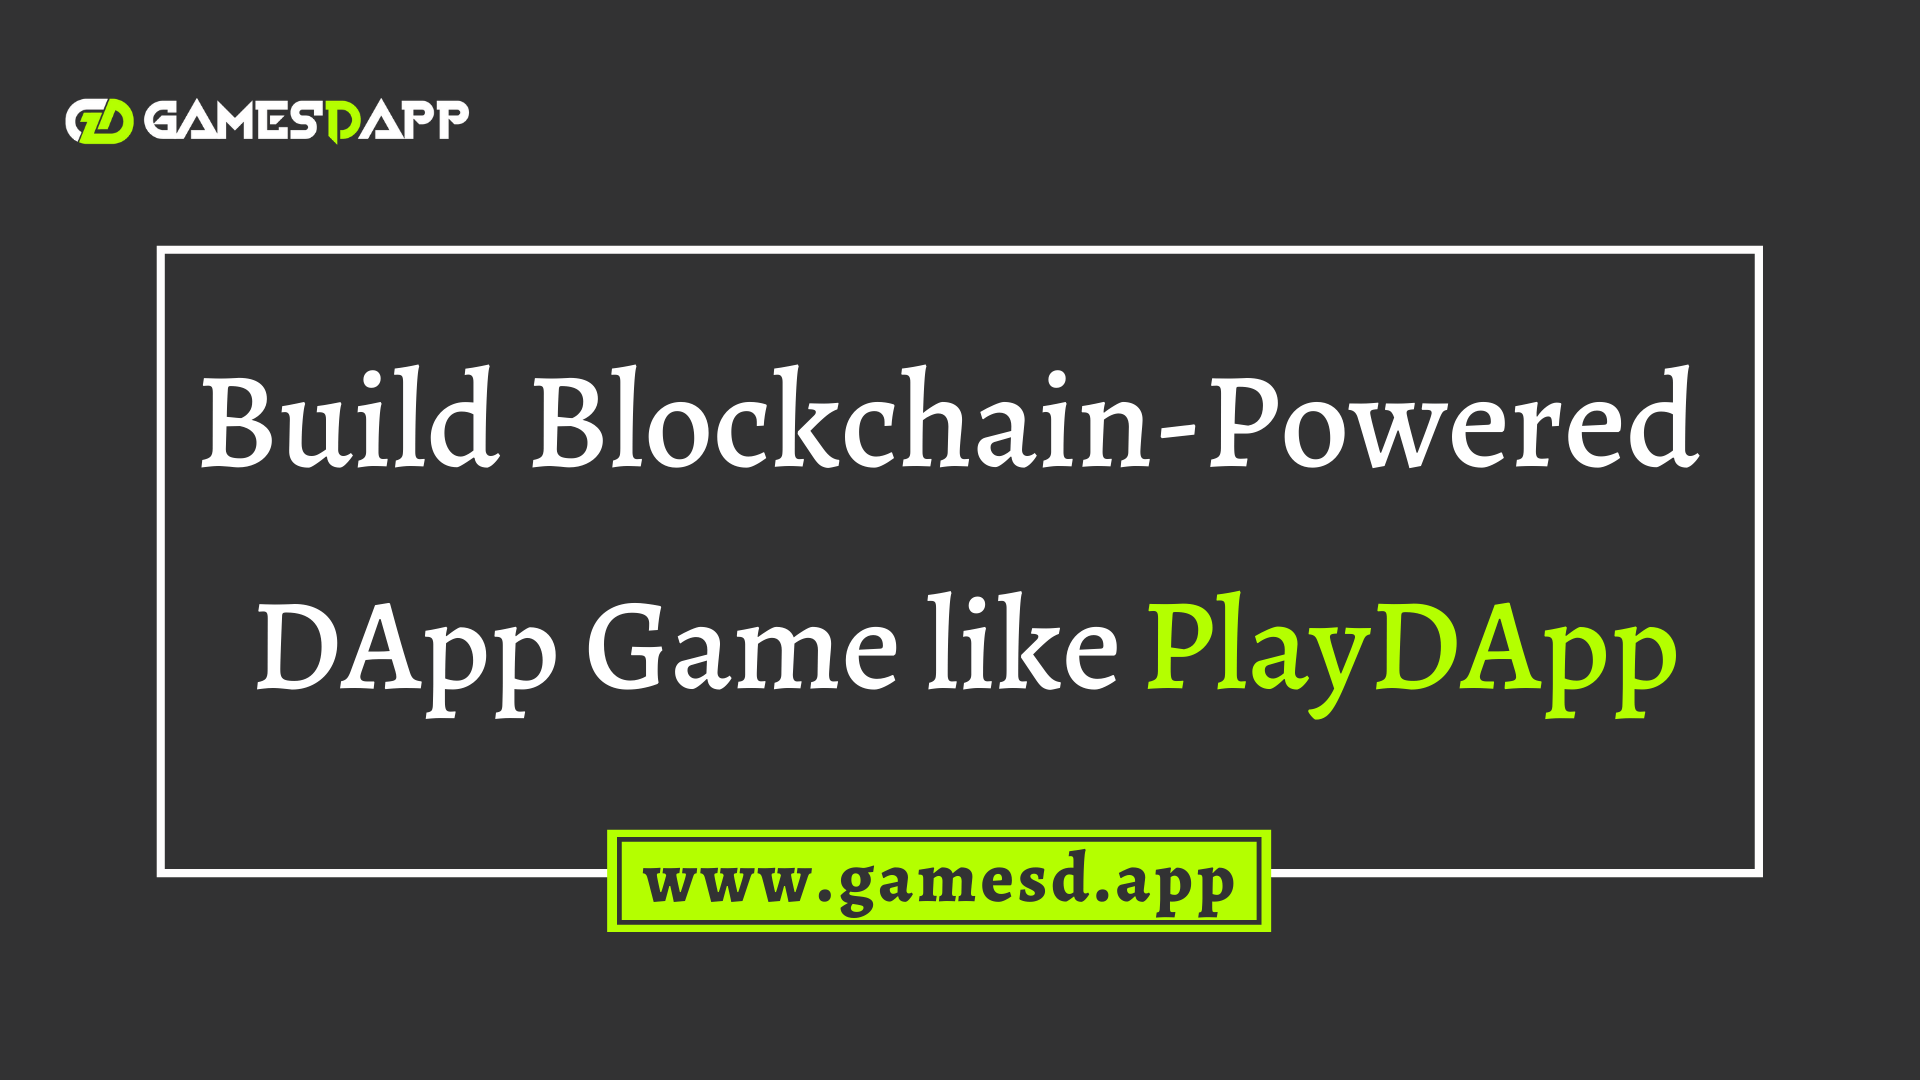 Build Blockchain-Powered Gaming Entertainment Ecosystem like PlayDApp